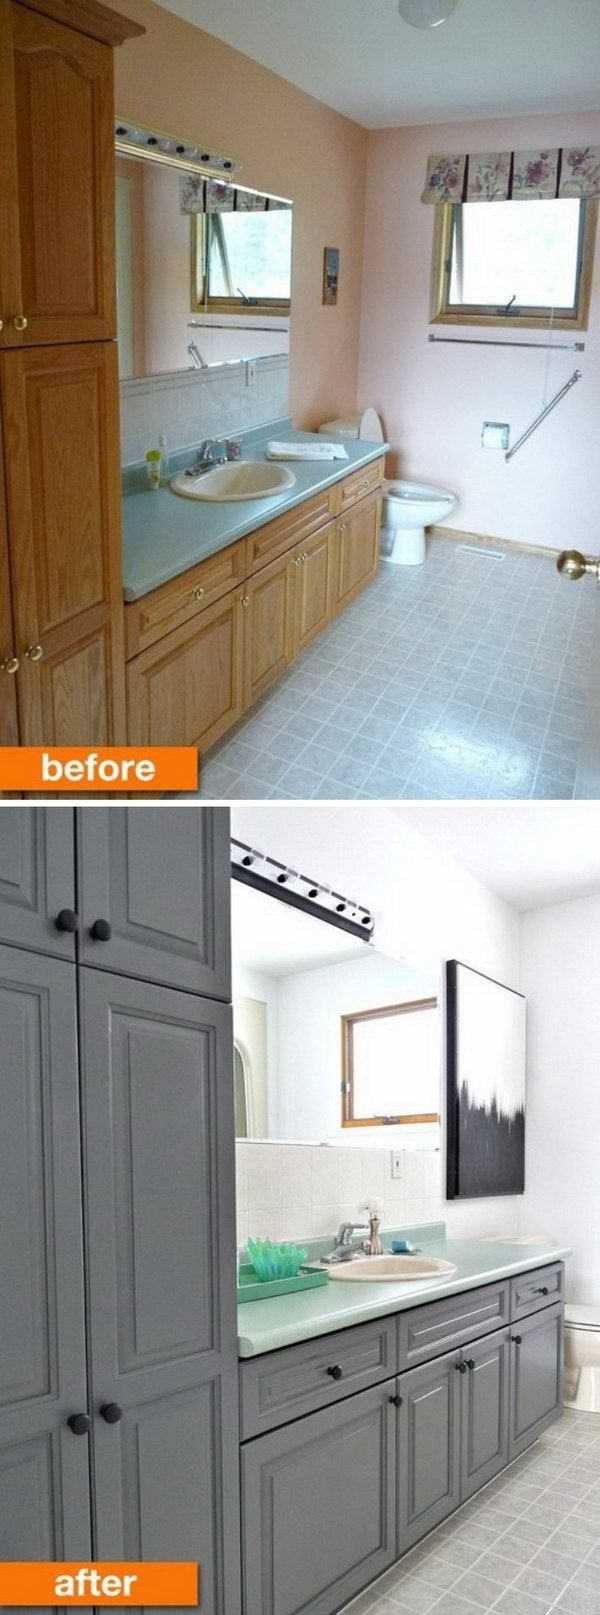 Bathroom Remodel List 122 best bathroom remodeling images on pinterest | room, home and